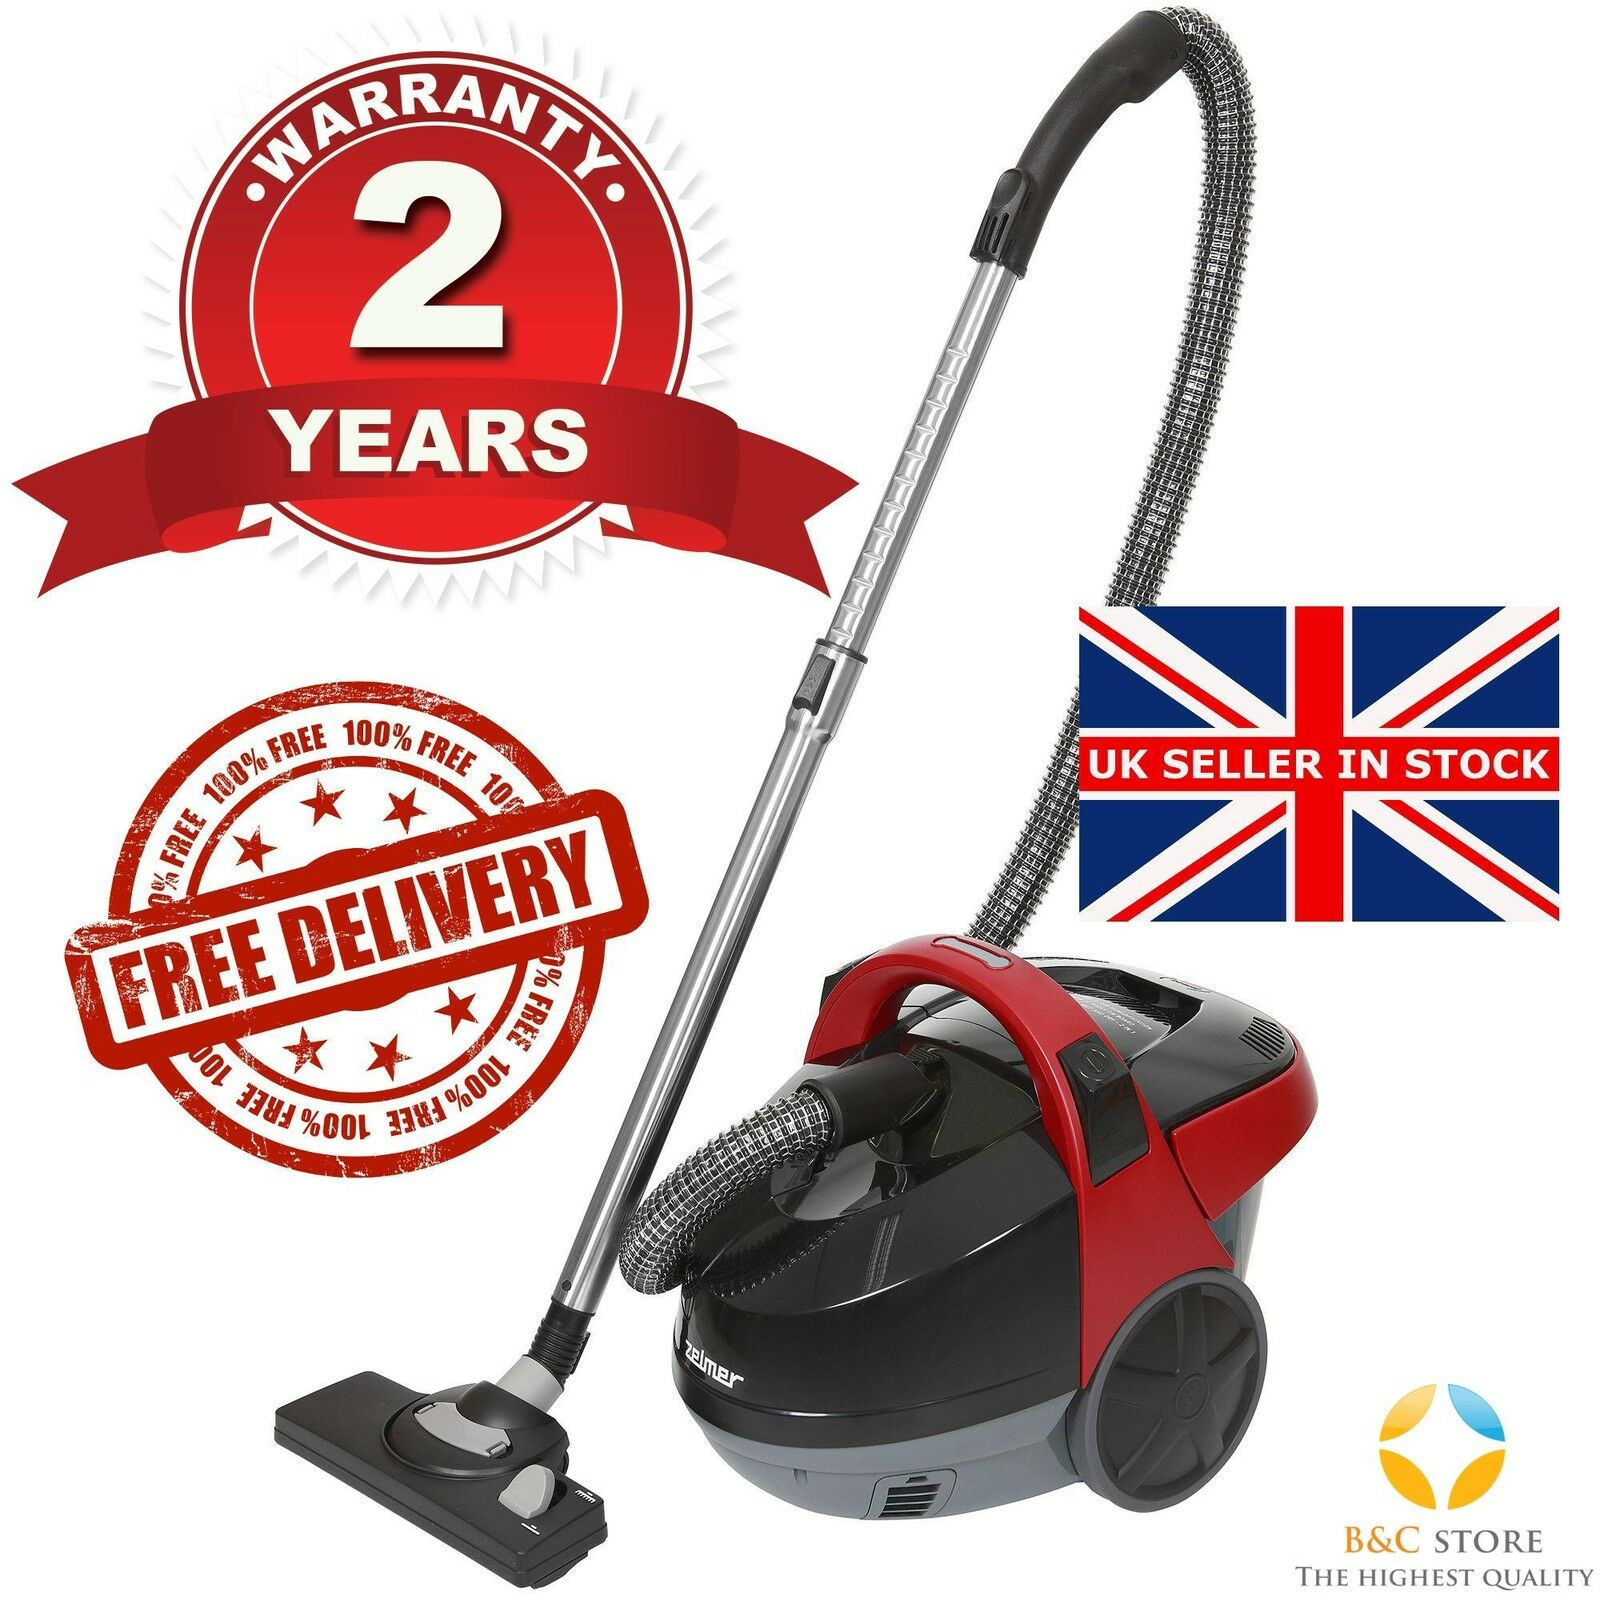 The best Zelmer vacuum cleaners with an aqua filter: five models of advice to buyers of brand vacuum cleaners 3